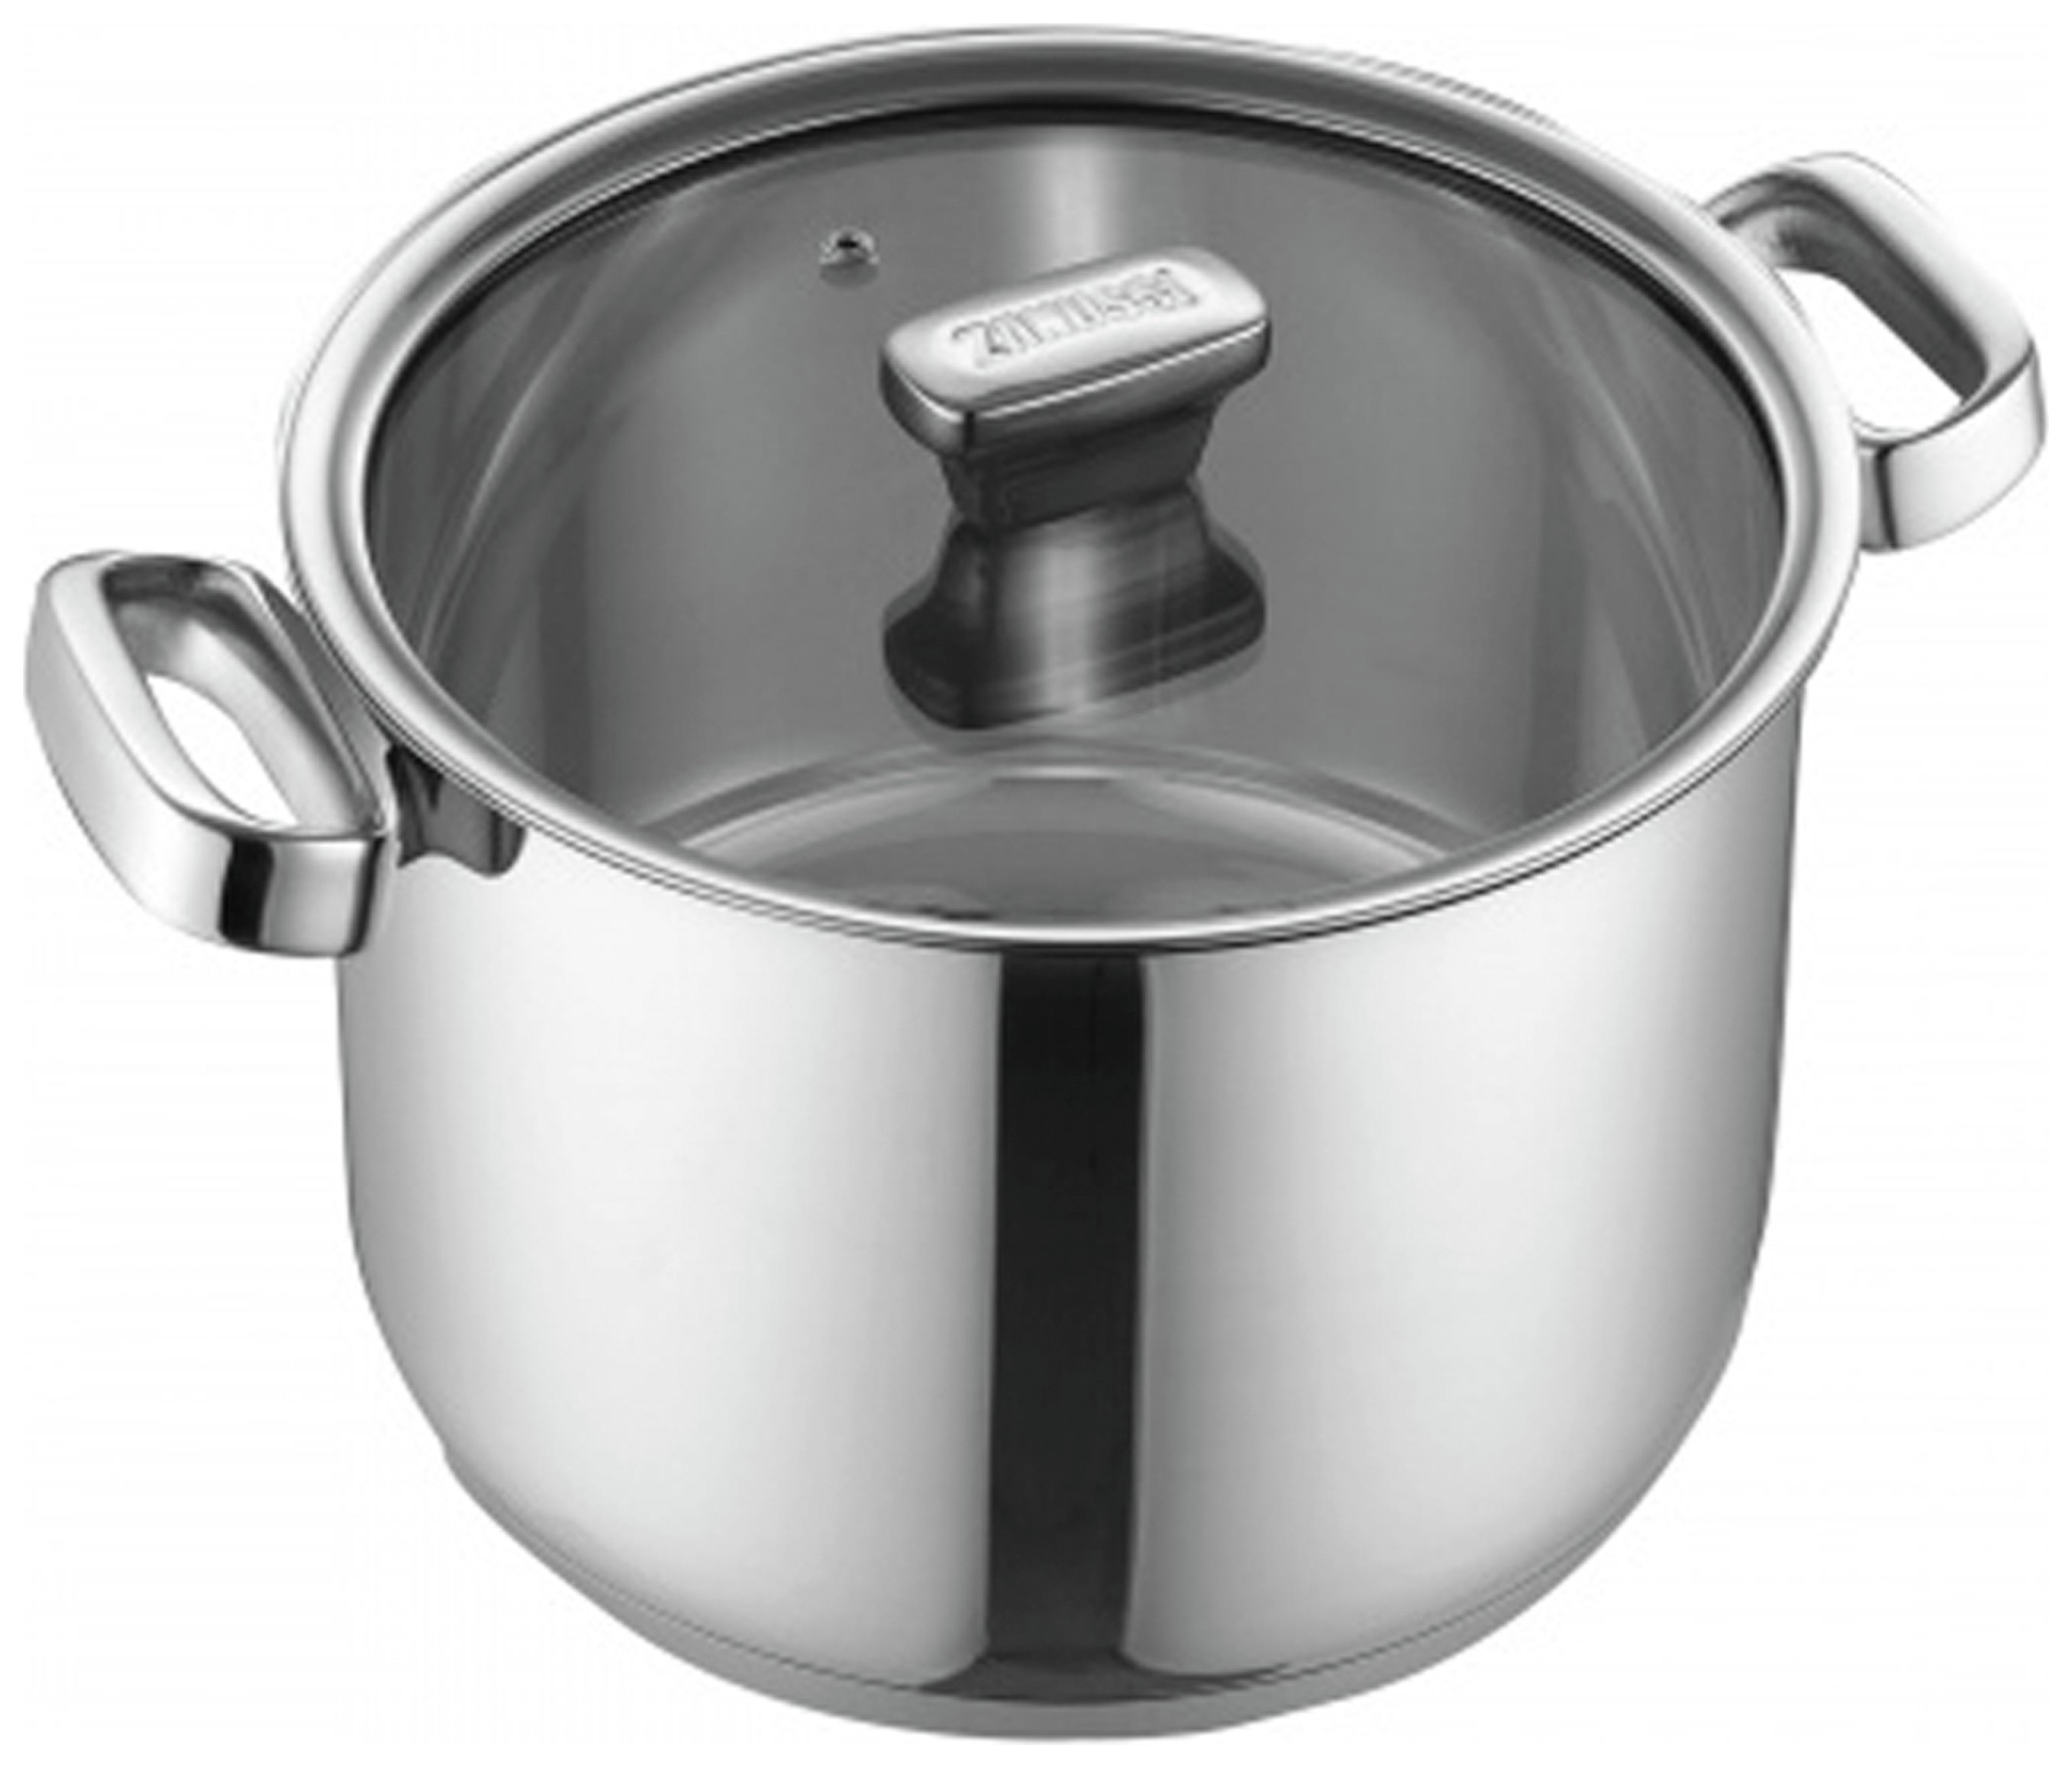 Zanussi Positano 24cm Stainless Steel Stock Pot with Lid